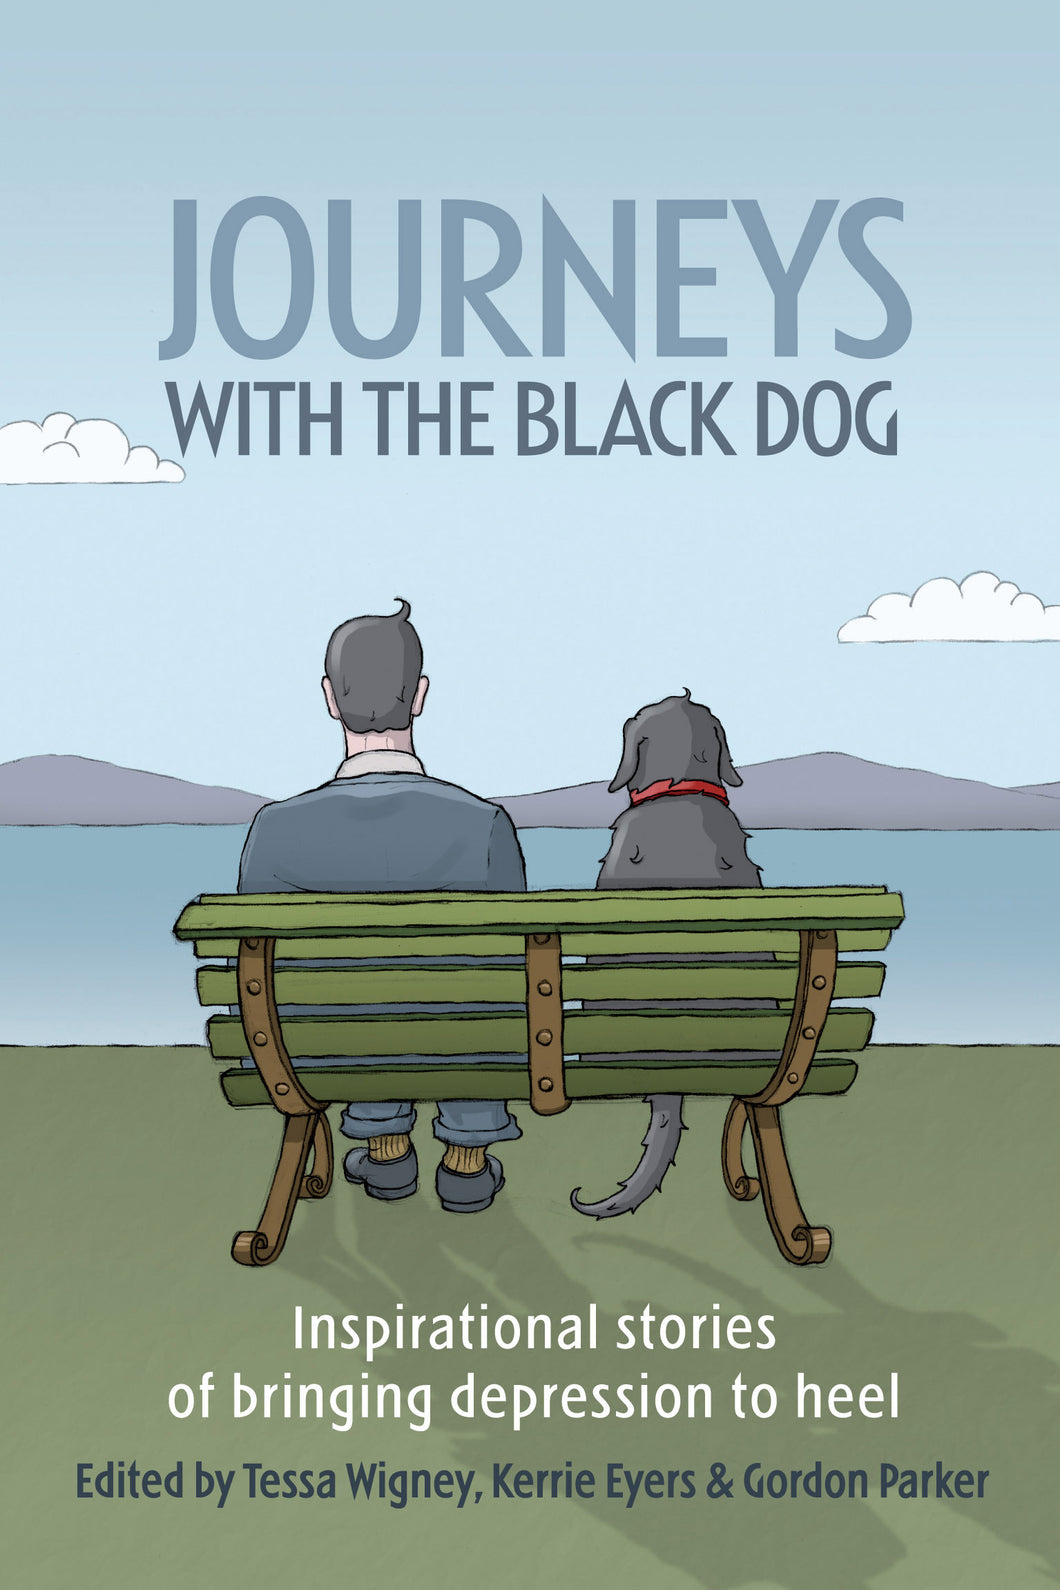 Journeys With the Black Dog-Inspirational stories of bringing depression to heel